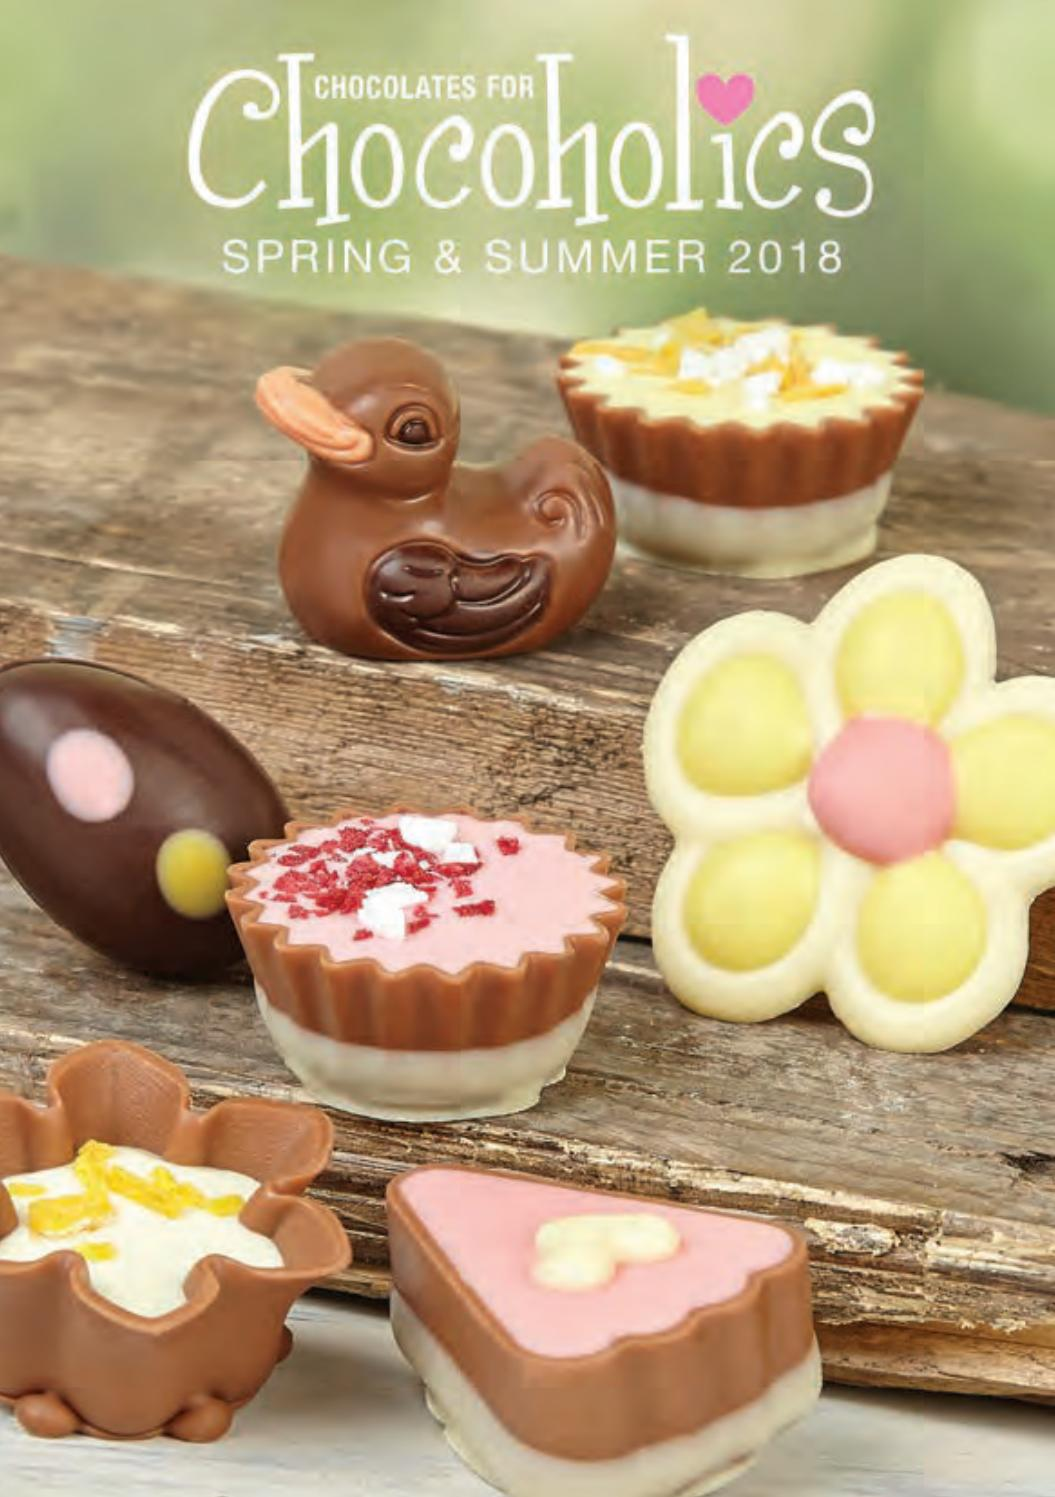 Chocoholics Spring And Summer 2018 By Chocolates For